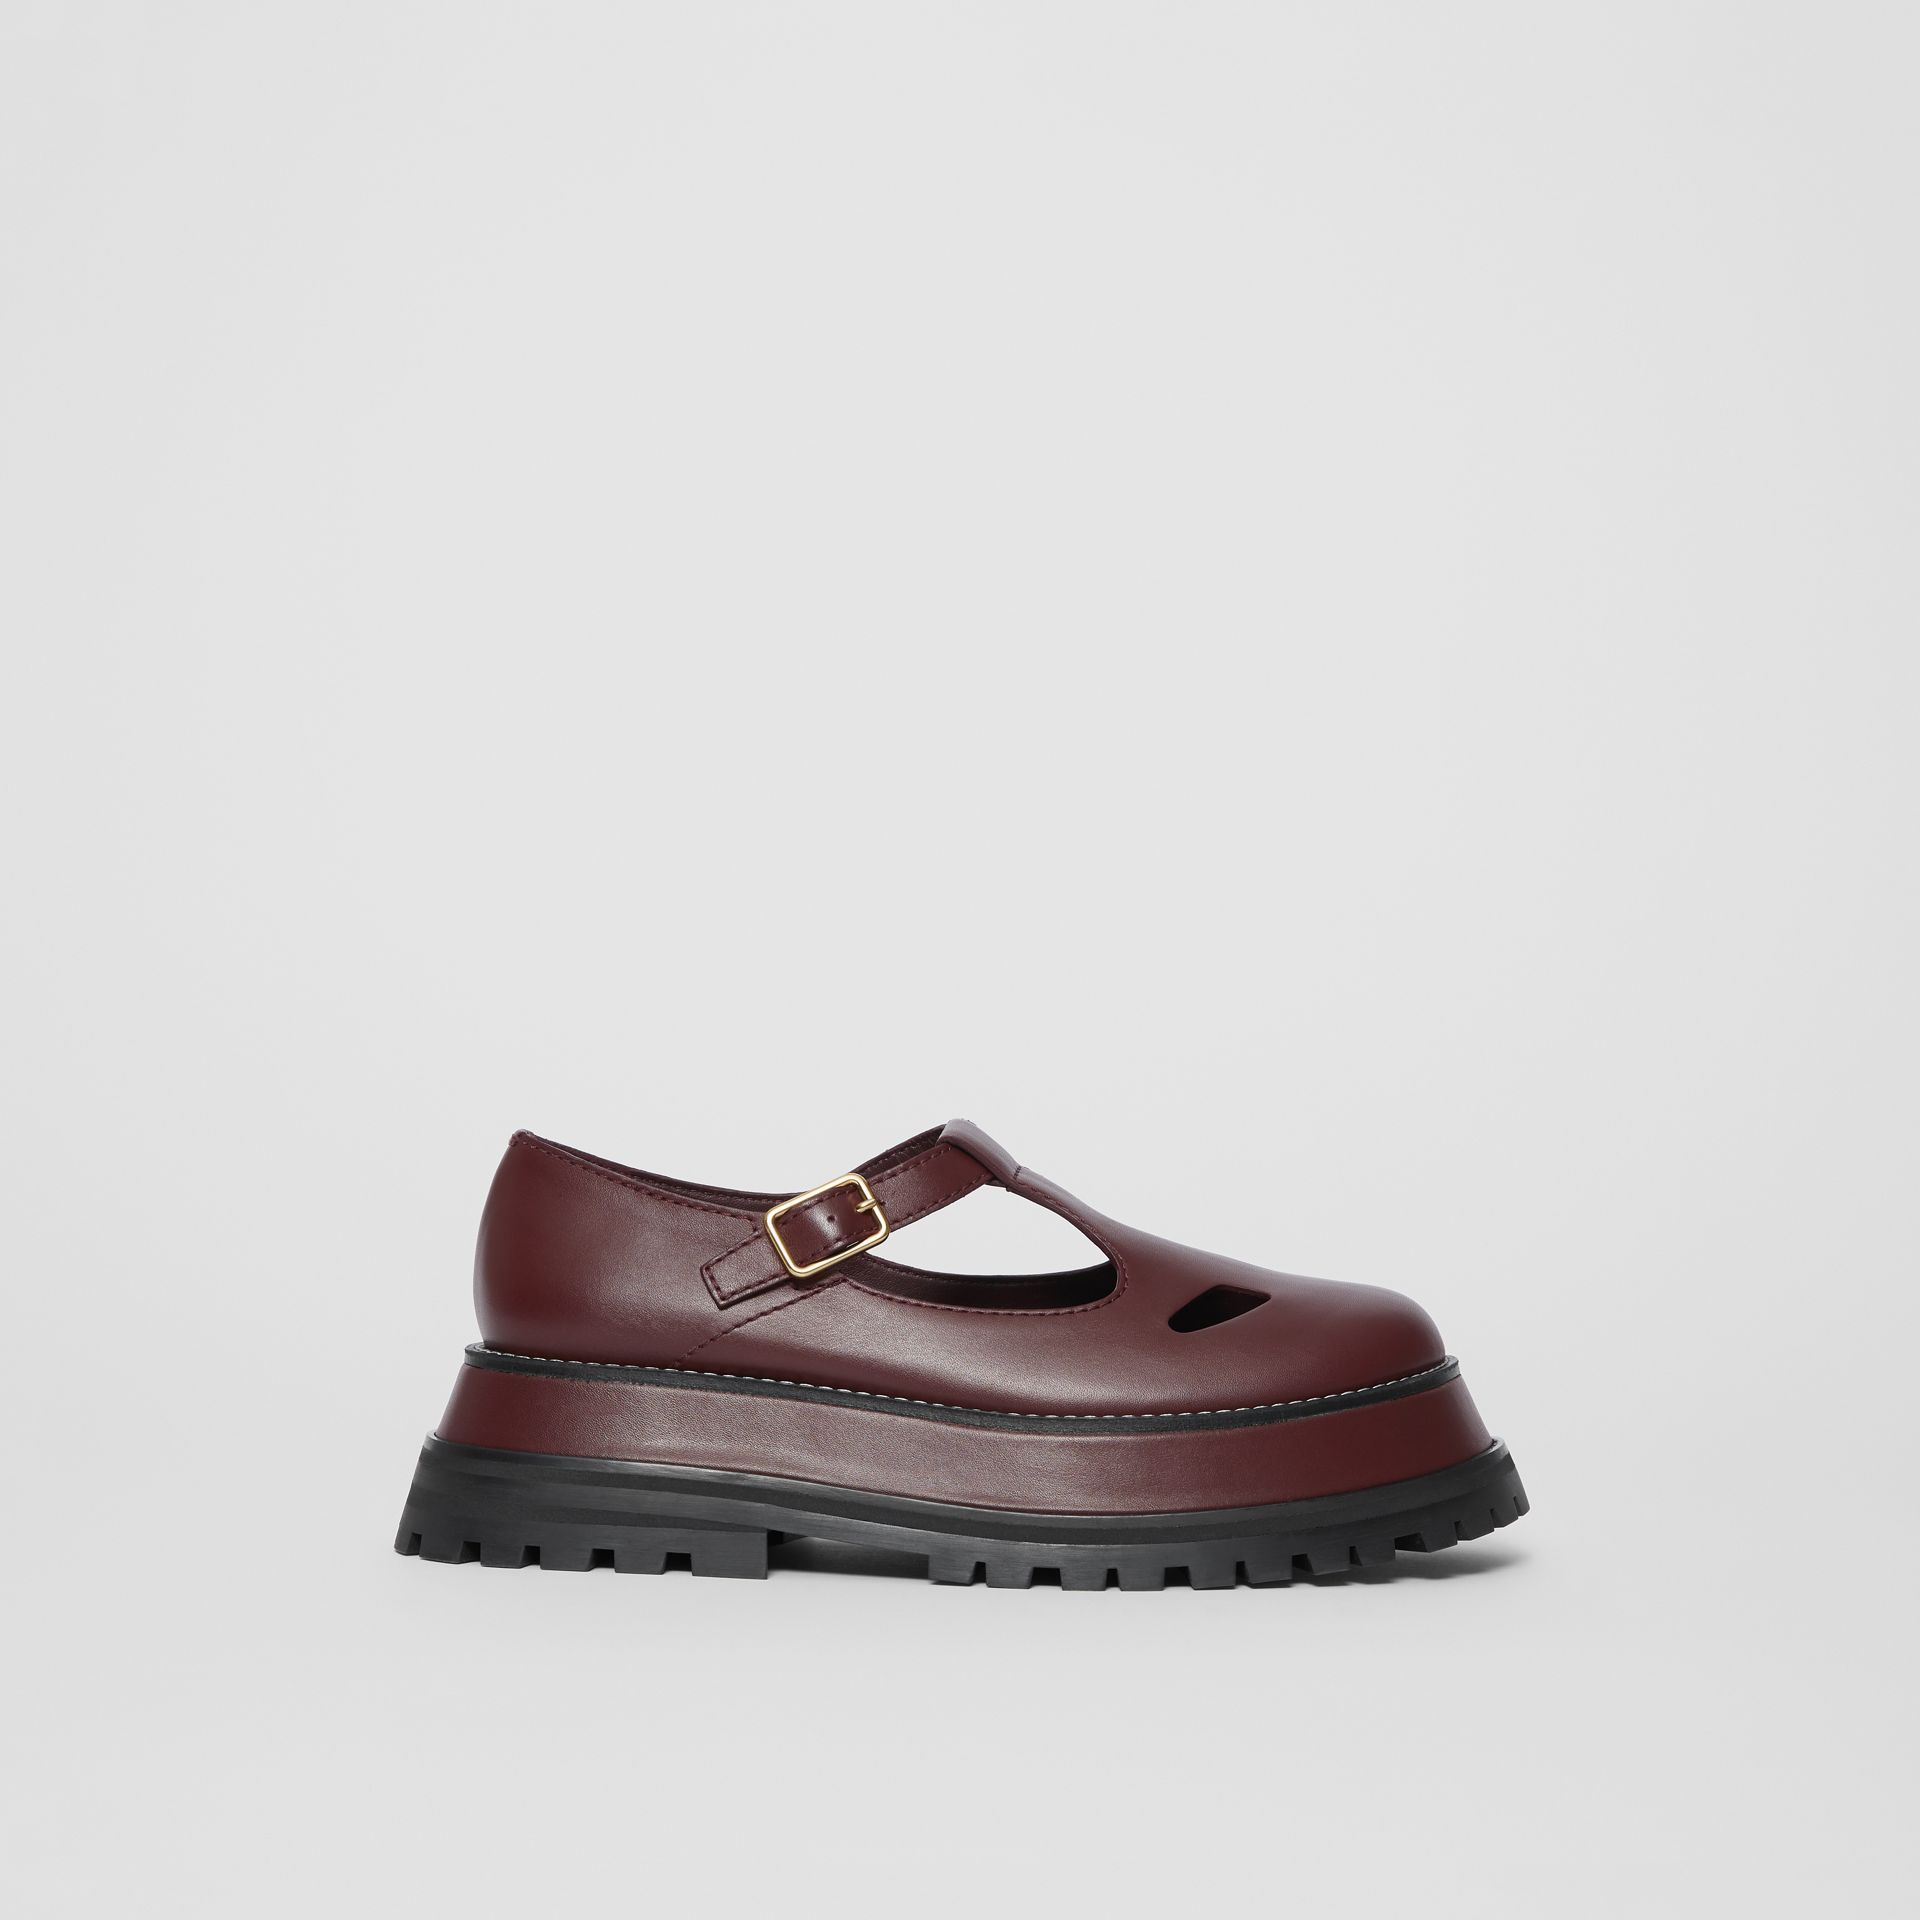 Leather T-bar Shoes in Bordeaux - Women | Burberry United Kingdom - gallery image 4